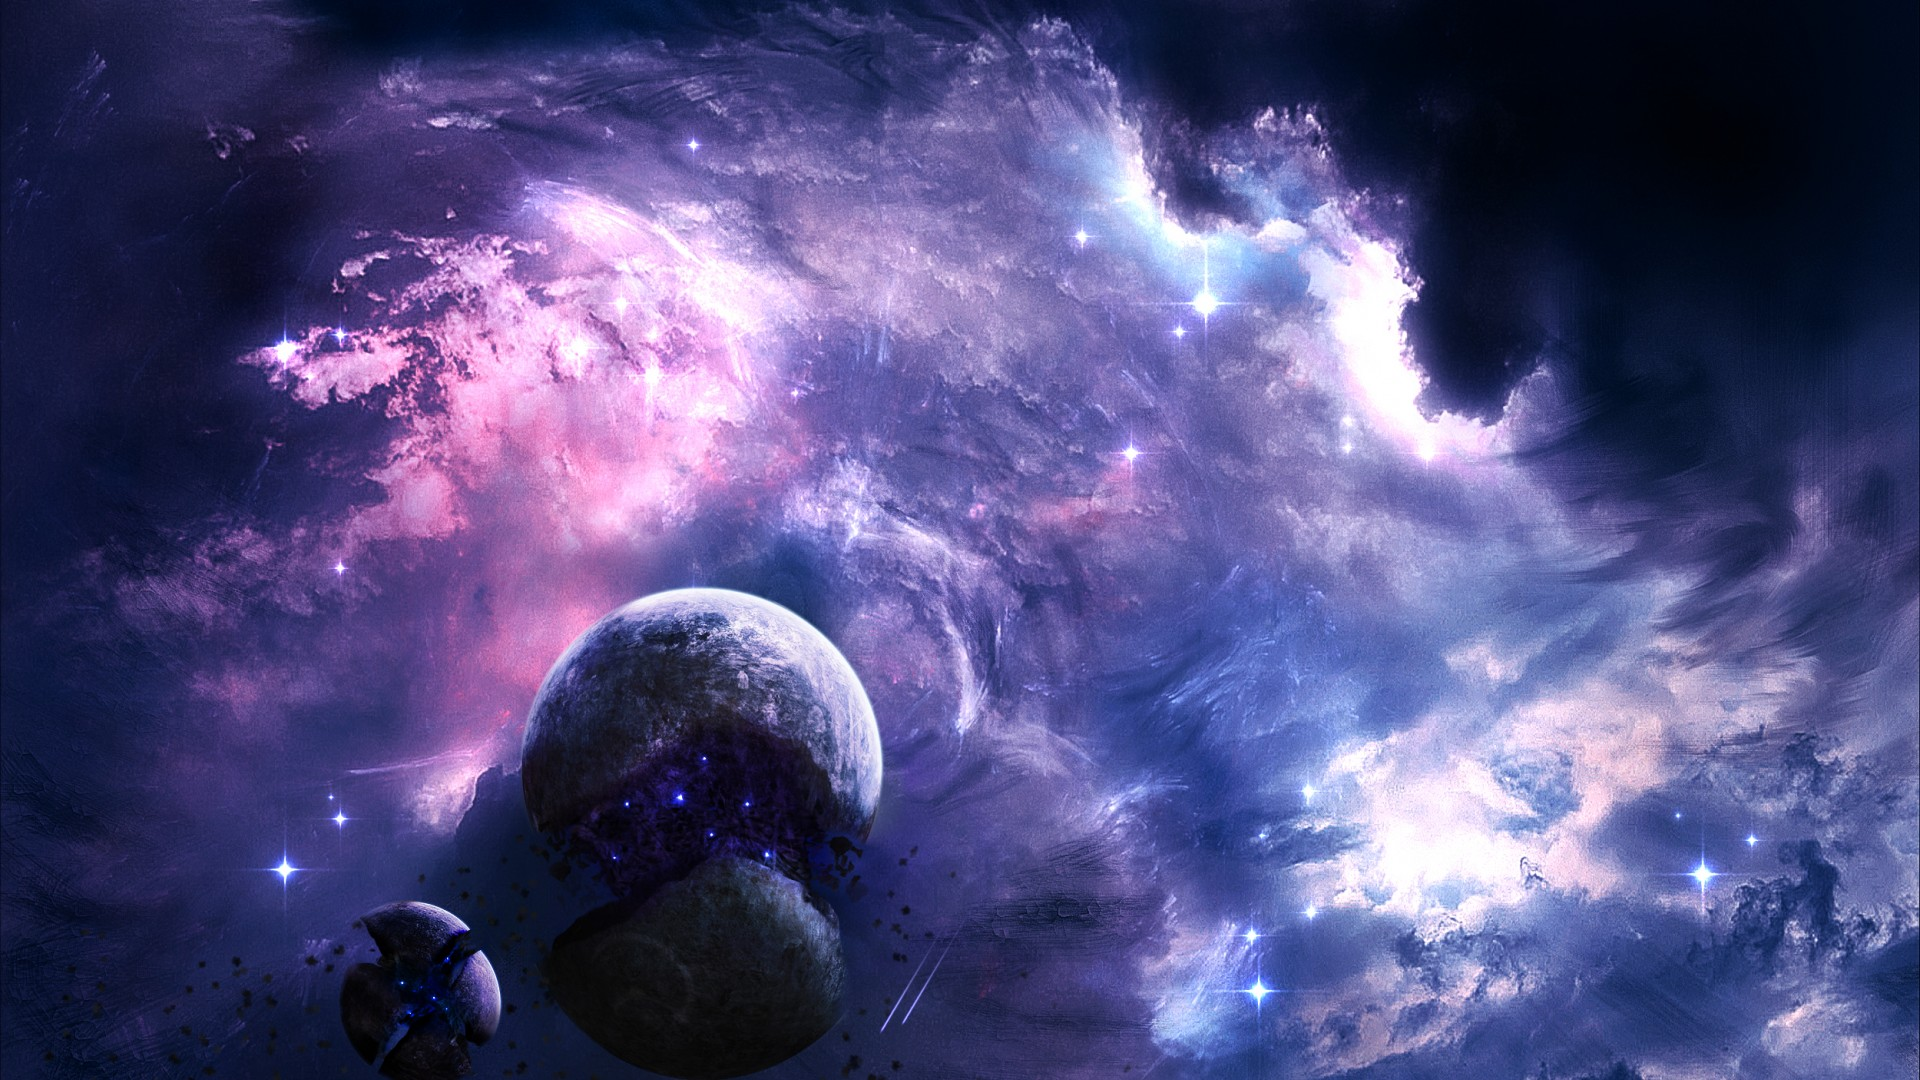 50 hd space wallpapers backgrounds for free download - Spacecraft wallpaper ...